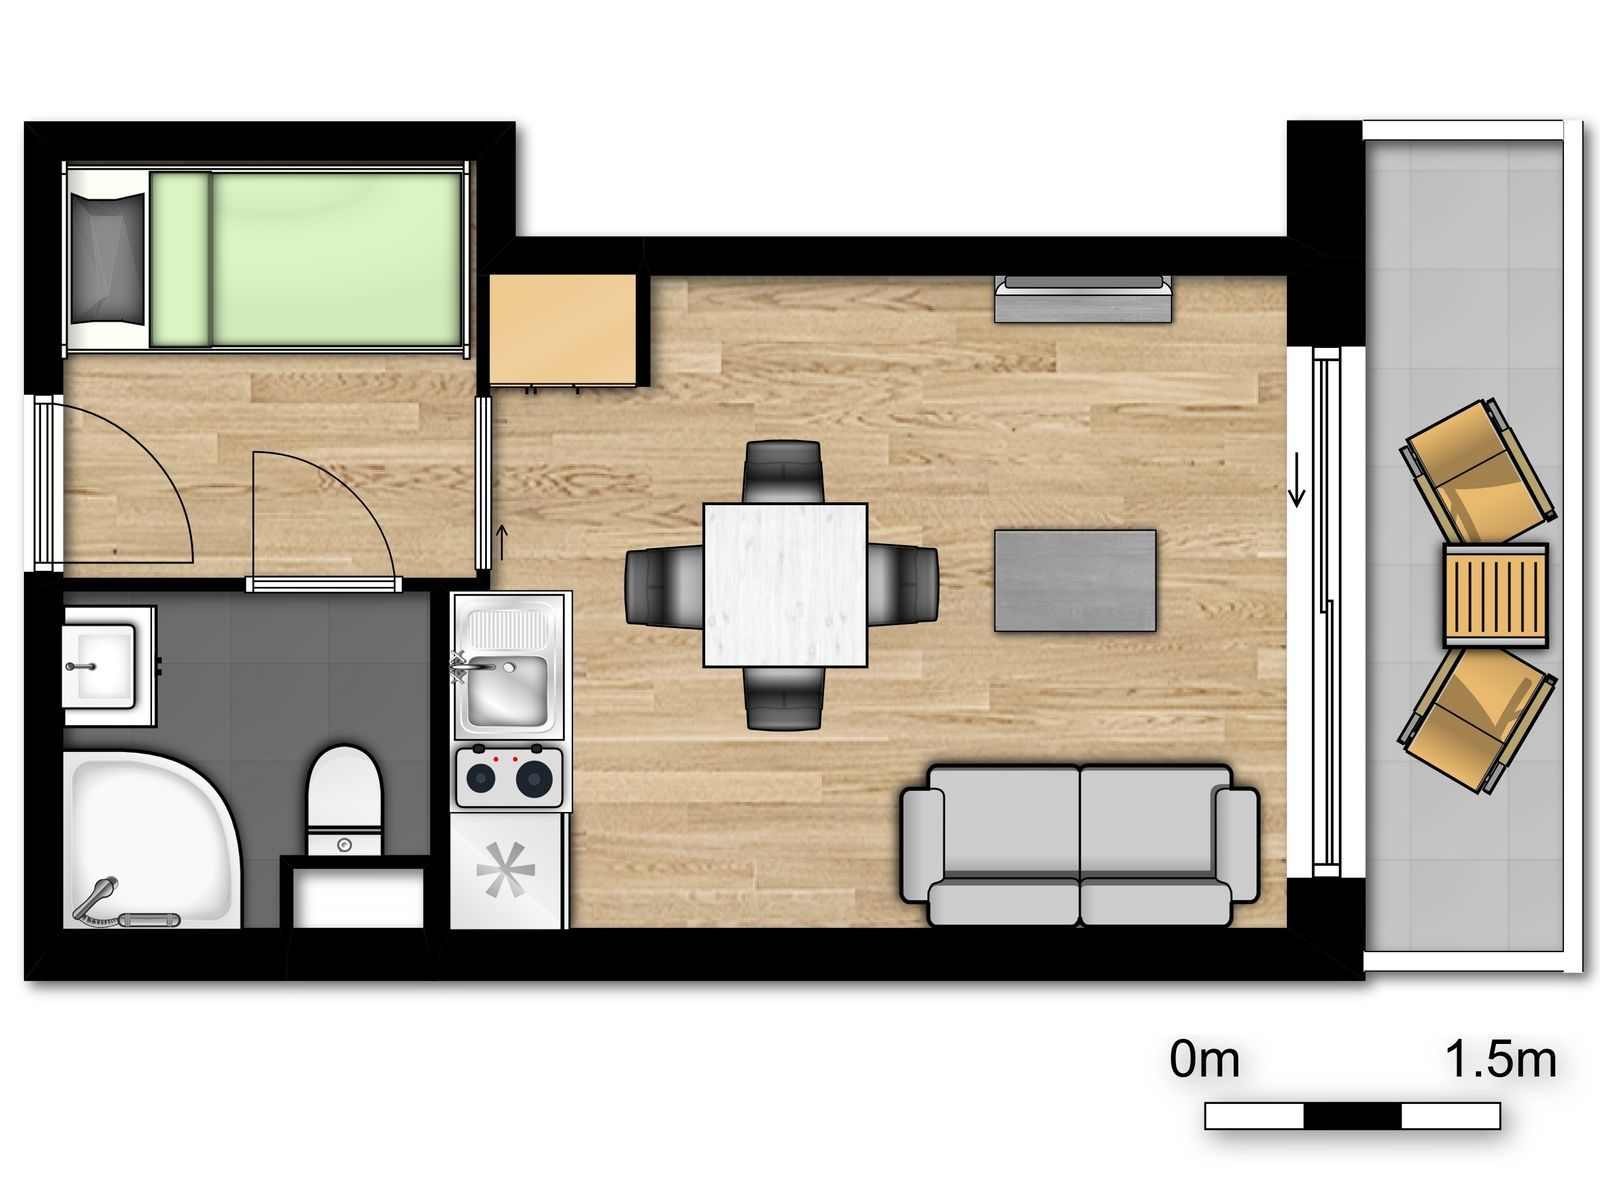 Standard studio for 4 people with sofa bed and balcony